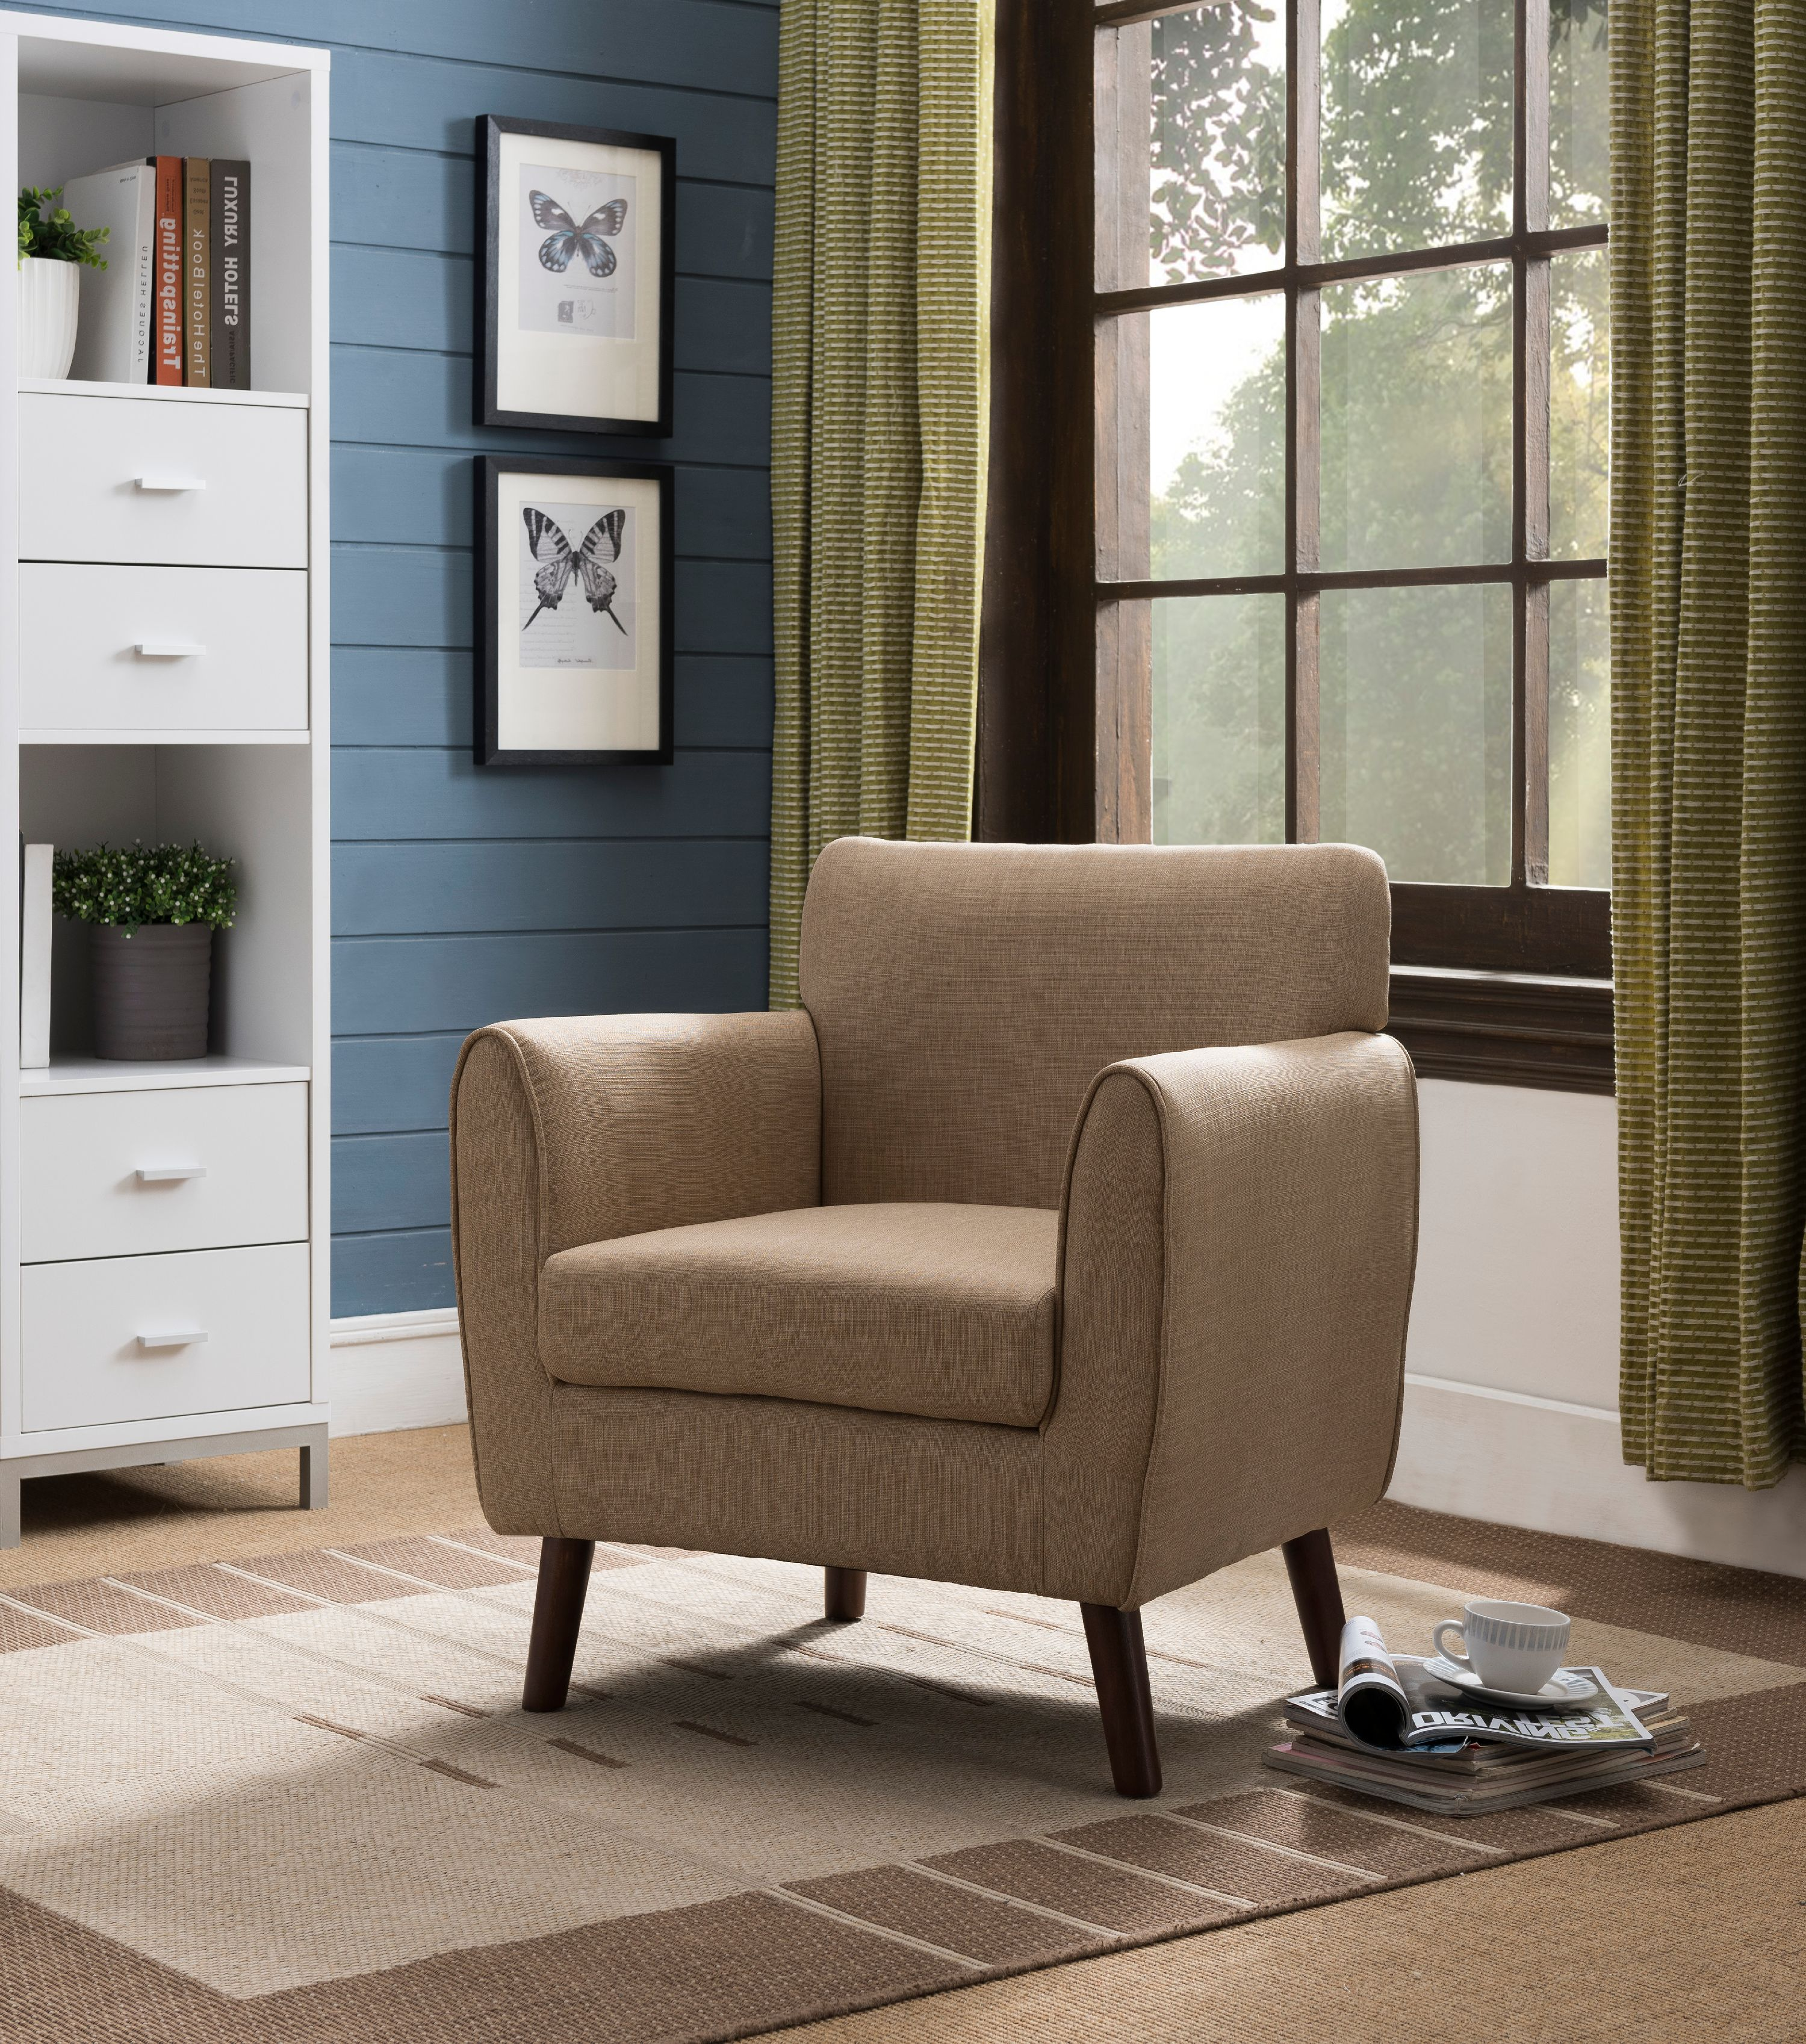 Superbe Emersyn Brown Upholstered Fabric Oversized Accent Living Room Arm Chair  With Solid Wood Legs